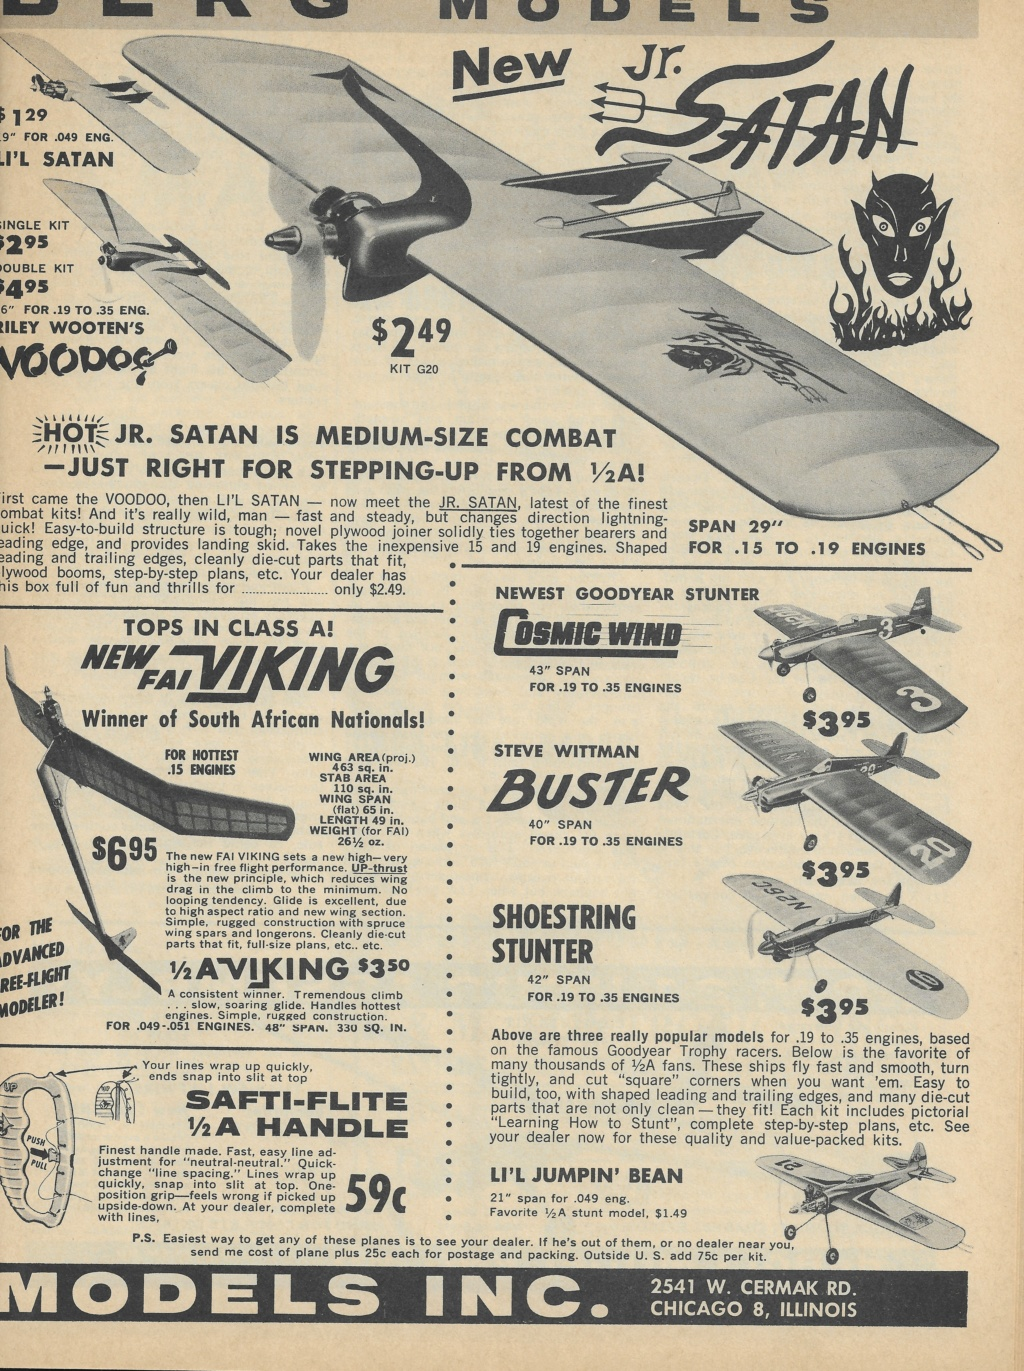 More Rattling from My Facebook Page:  The Carl Goldberg Shoestring Profile Stunter  0_3_go11